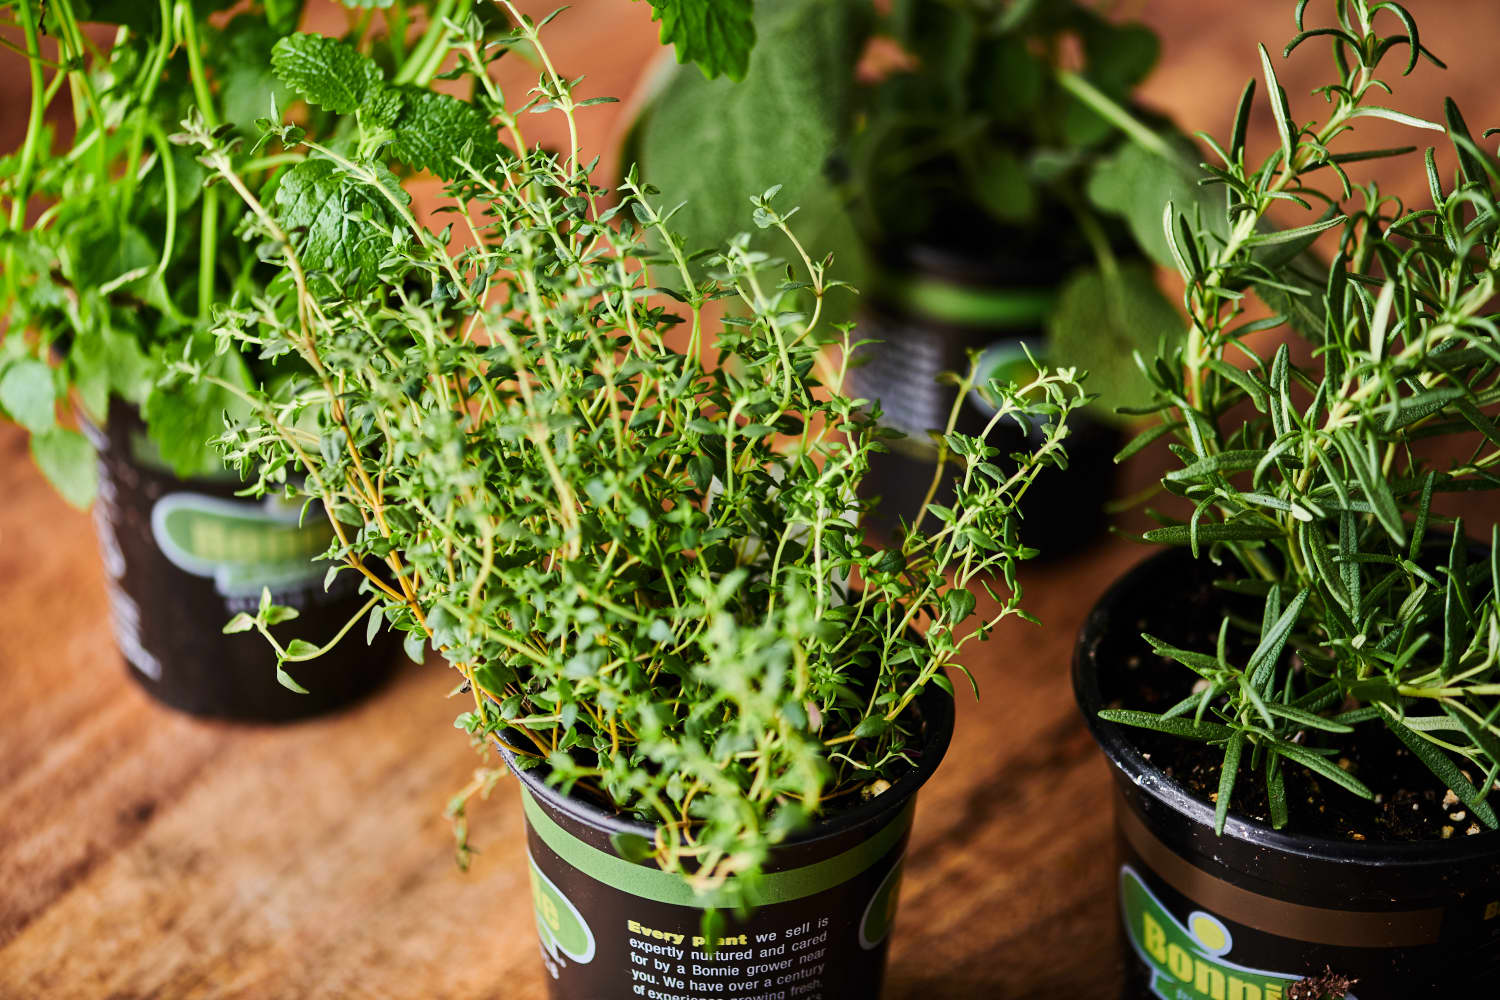 6 Things Everyone Should Know About Buying Potted Herbs from the Grocery Store